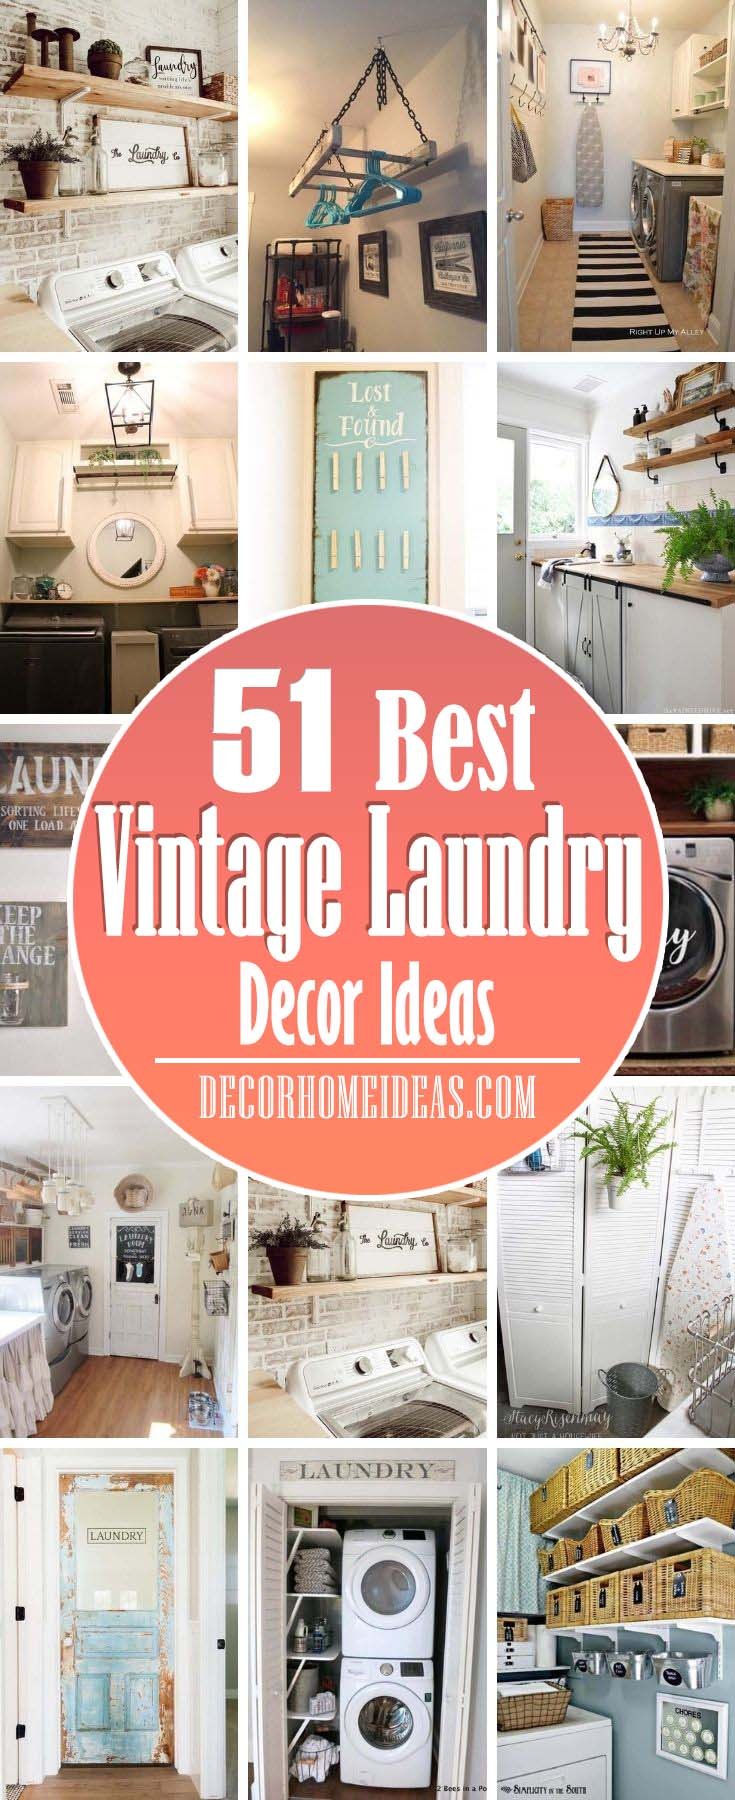 Best Vintage Laundry Decor Ideas. Give your laundry room a vintage look with these decor ideas including baskets, anchor style, clothespins, room signs, retro themed accessories, walls and more. #decorhomeideas